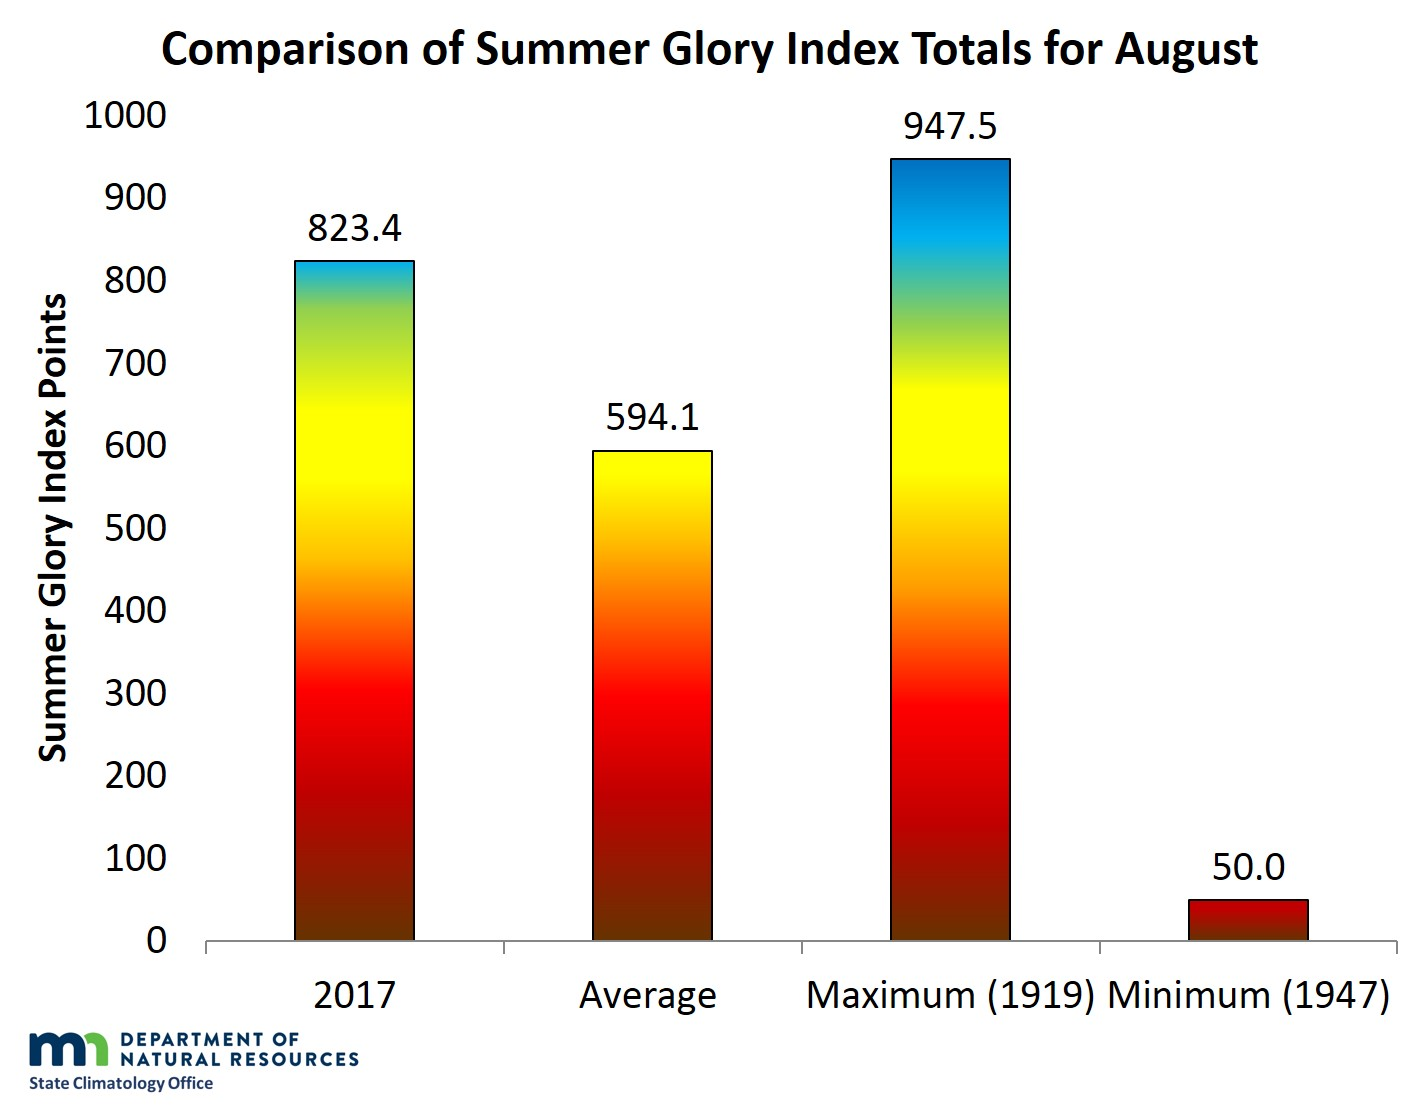 Comparison of Summer Glory Index values for August